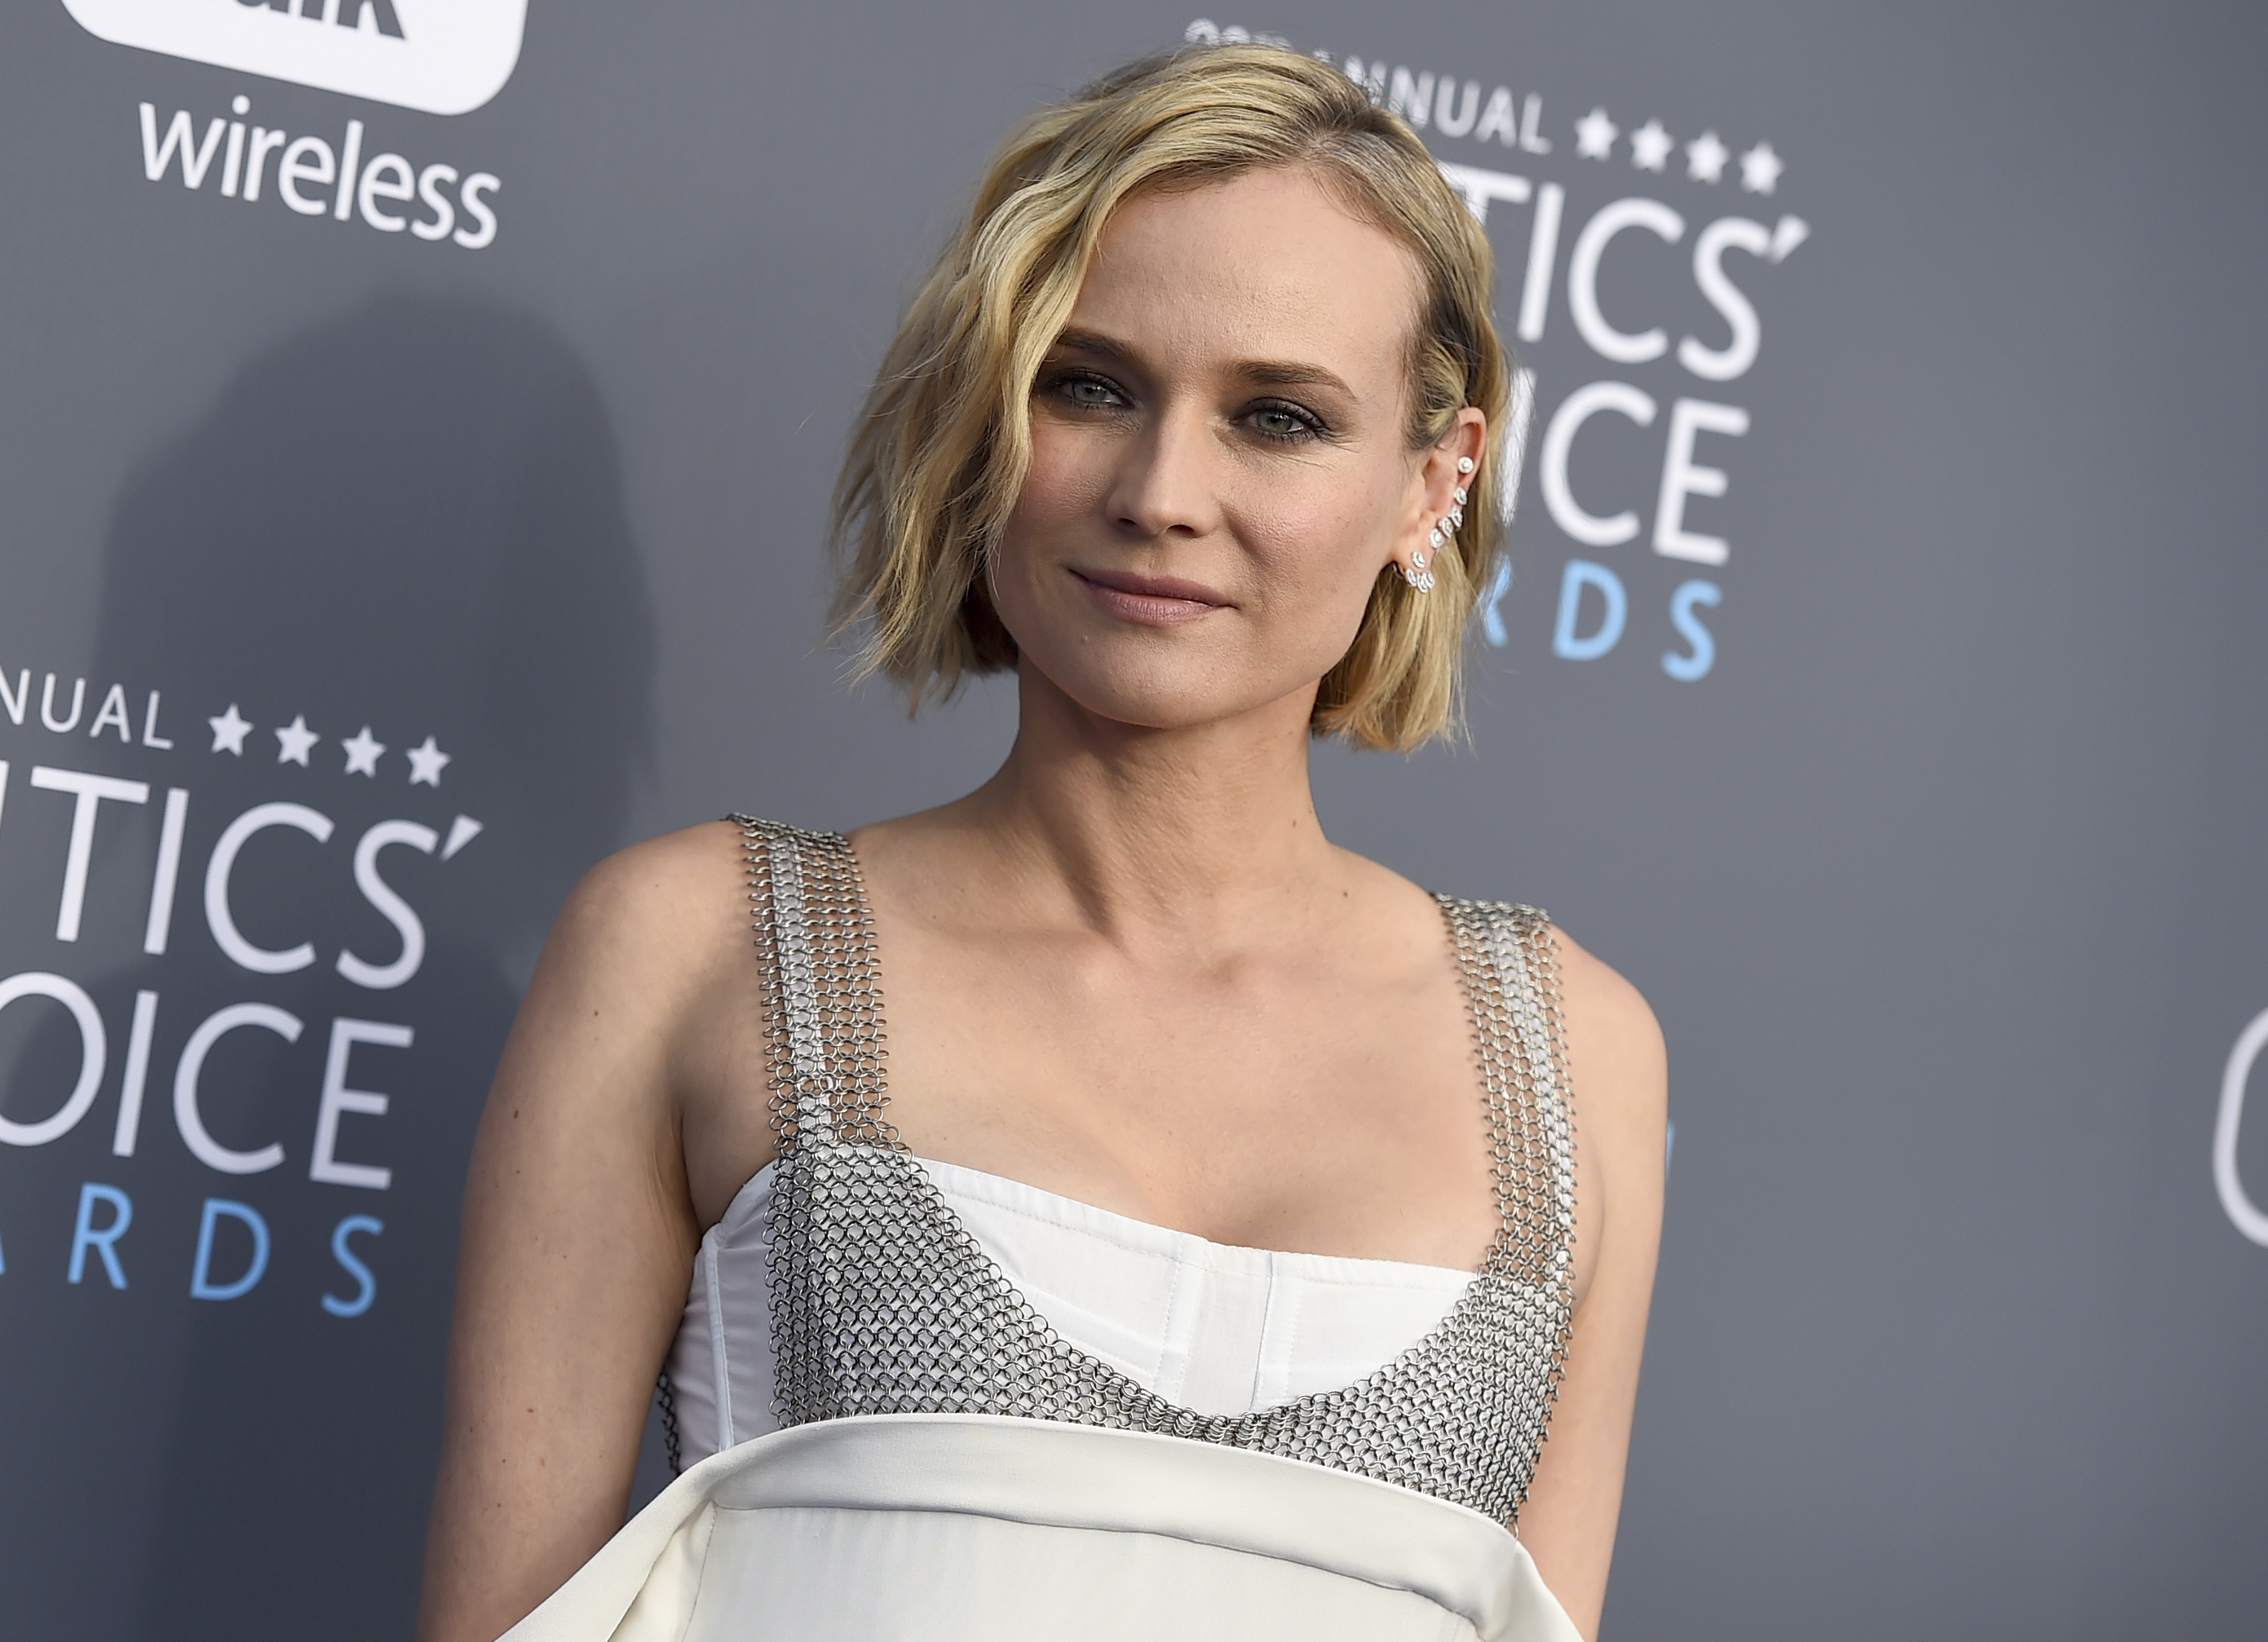 <div class='meta'><div class='origin-logo' data-origin='AP'></div><span class='caption-text' data-credit='Jordan Strauss/Invision/AP'>Diane Kruger arrives at the 23rd annual Critics' Choice Awards at the Barker Hangar on Thursday, Jan. 11, 2018, in Santa Monica, Calif.</span></div>